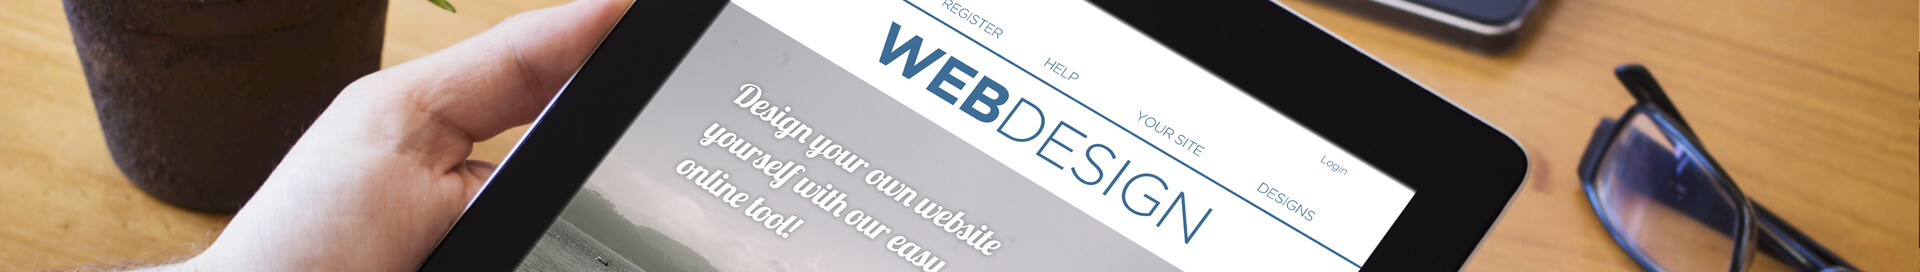 Hire Web Designers in India, Website Designing services in Delhi NCR, Web Designing services in Gurgaon